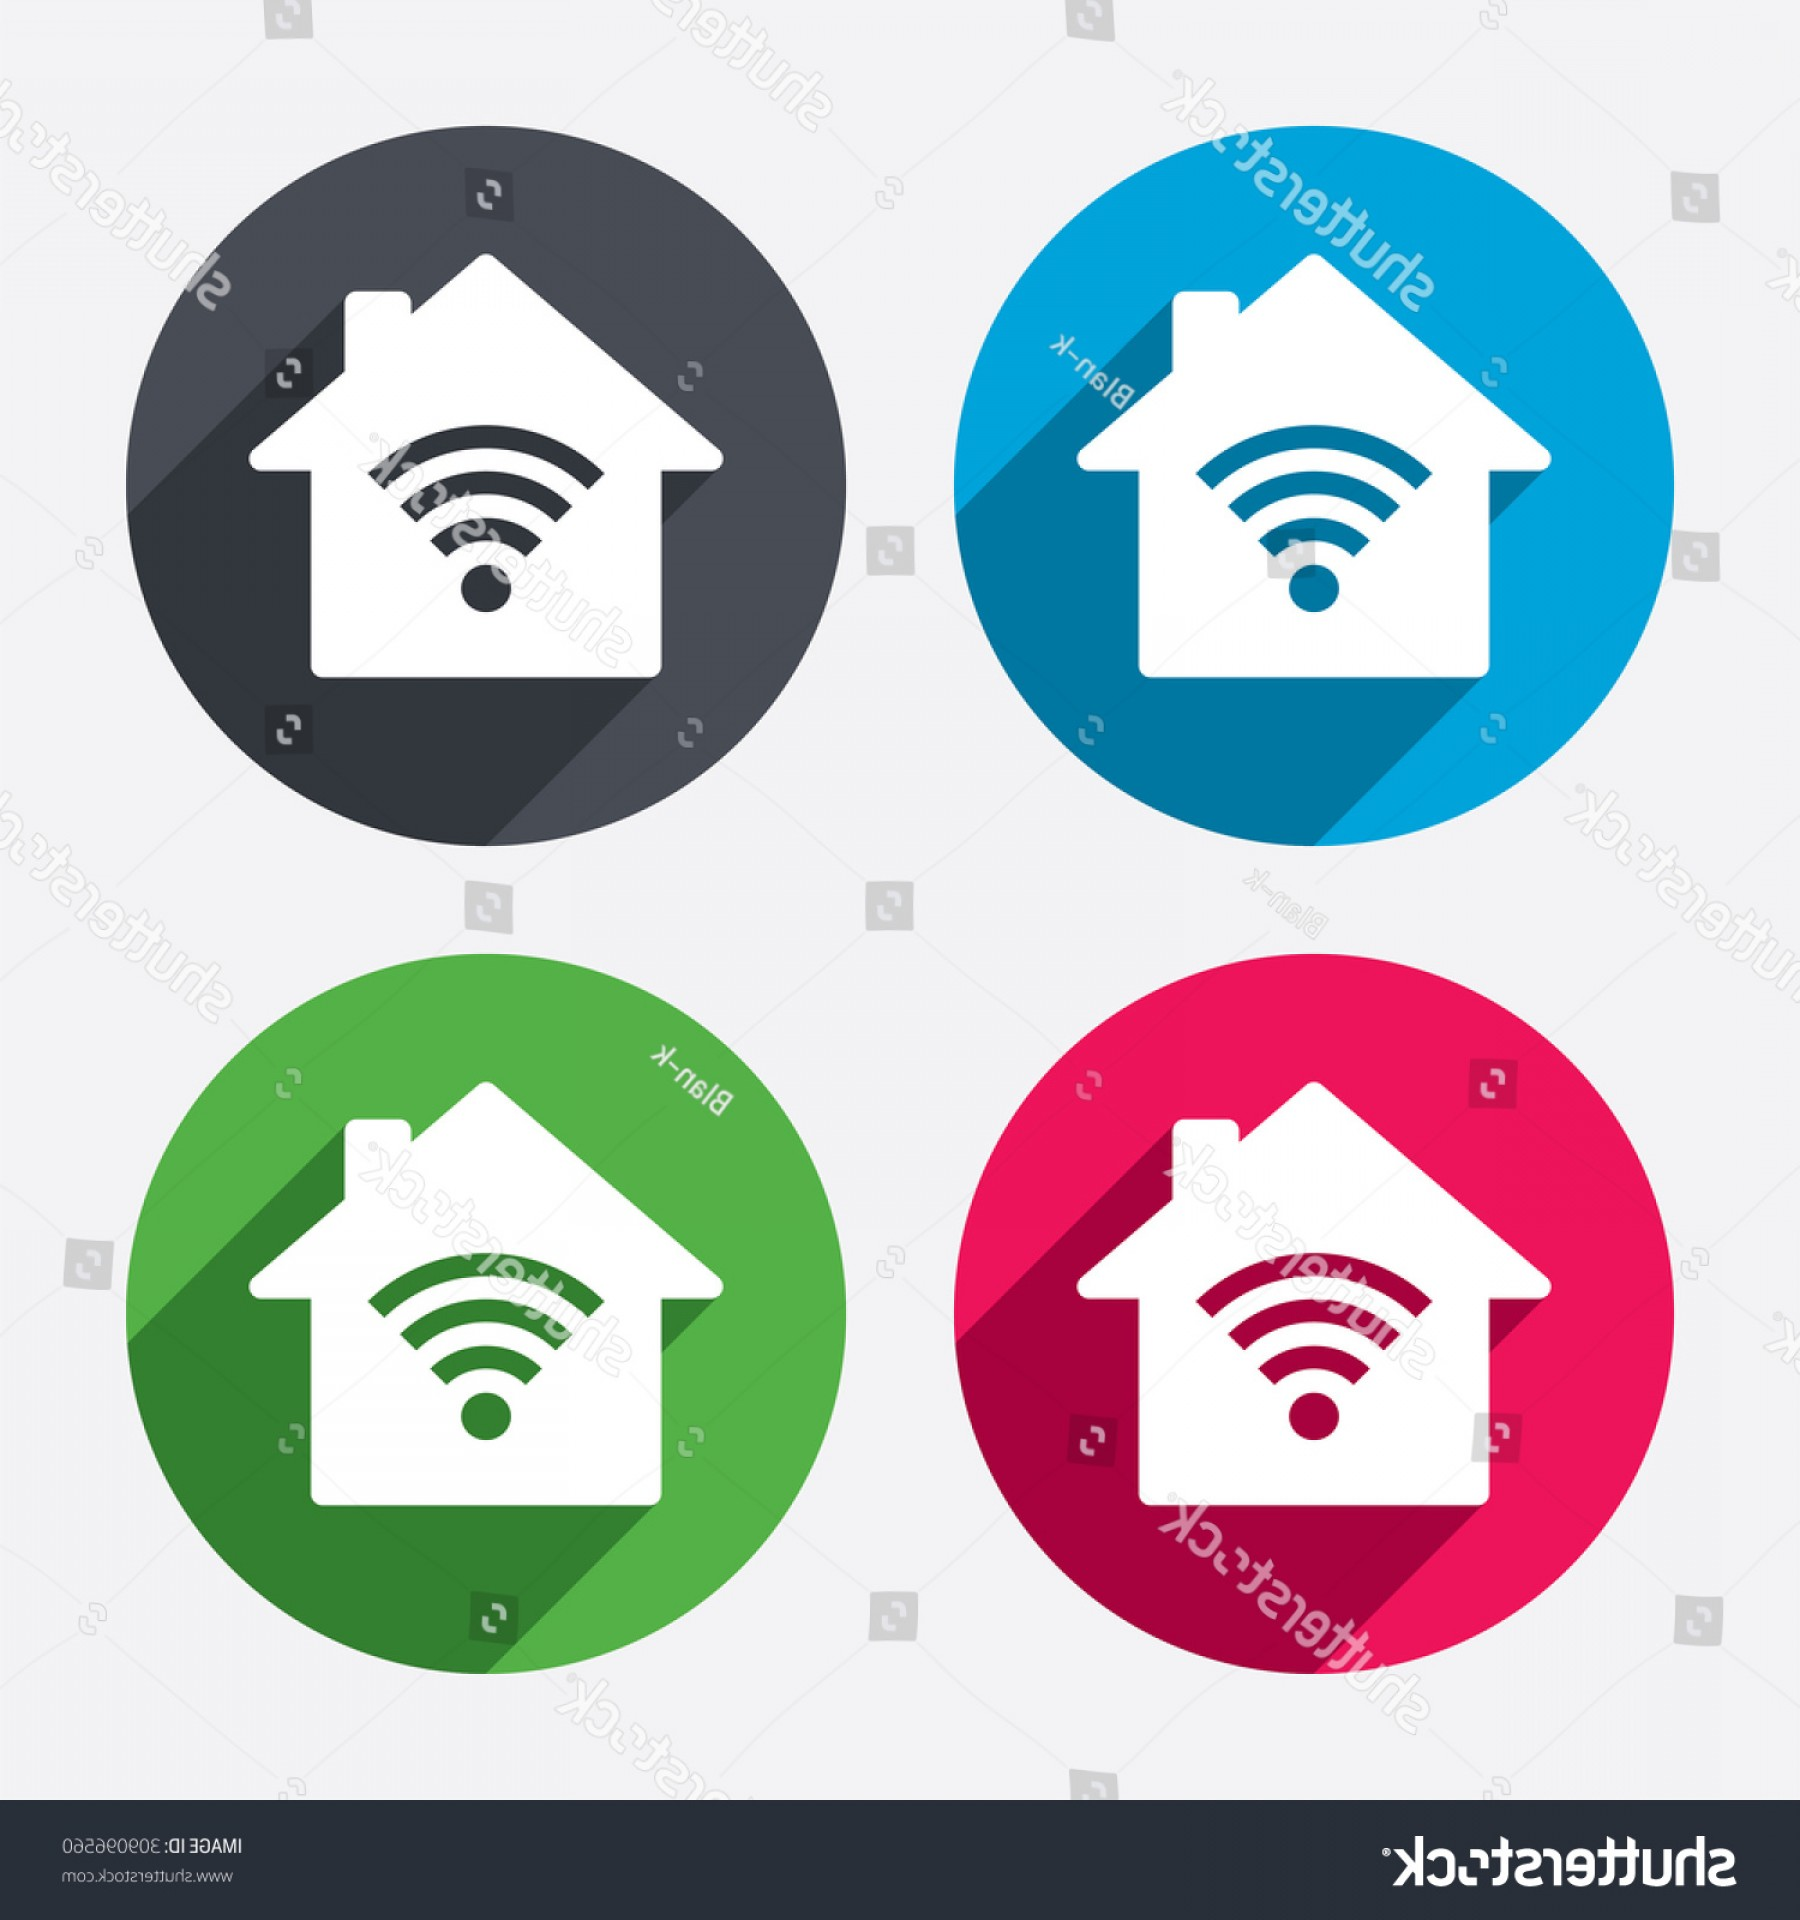 Wifi Symbol Clip Art Vector: Home Wifi Sign Symbol Wireless Network